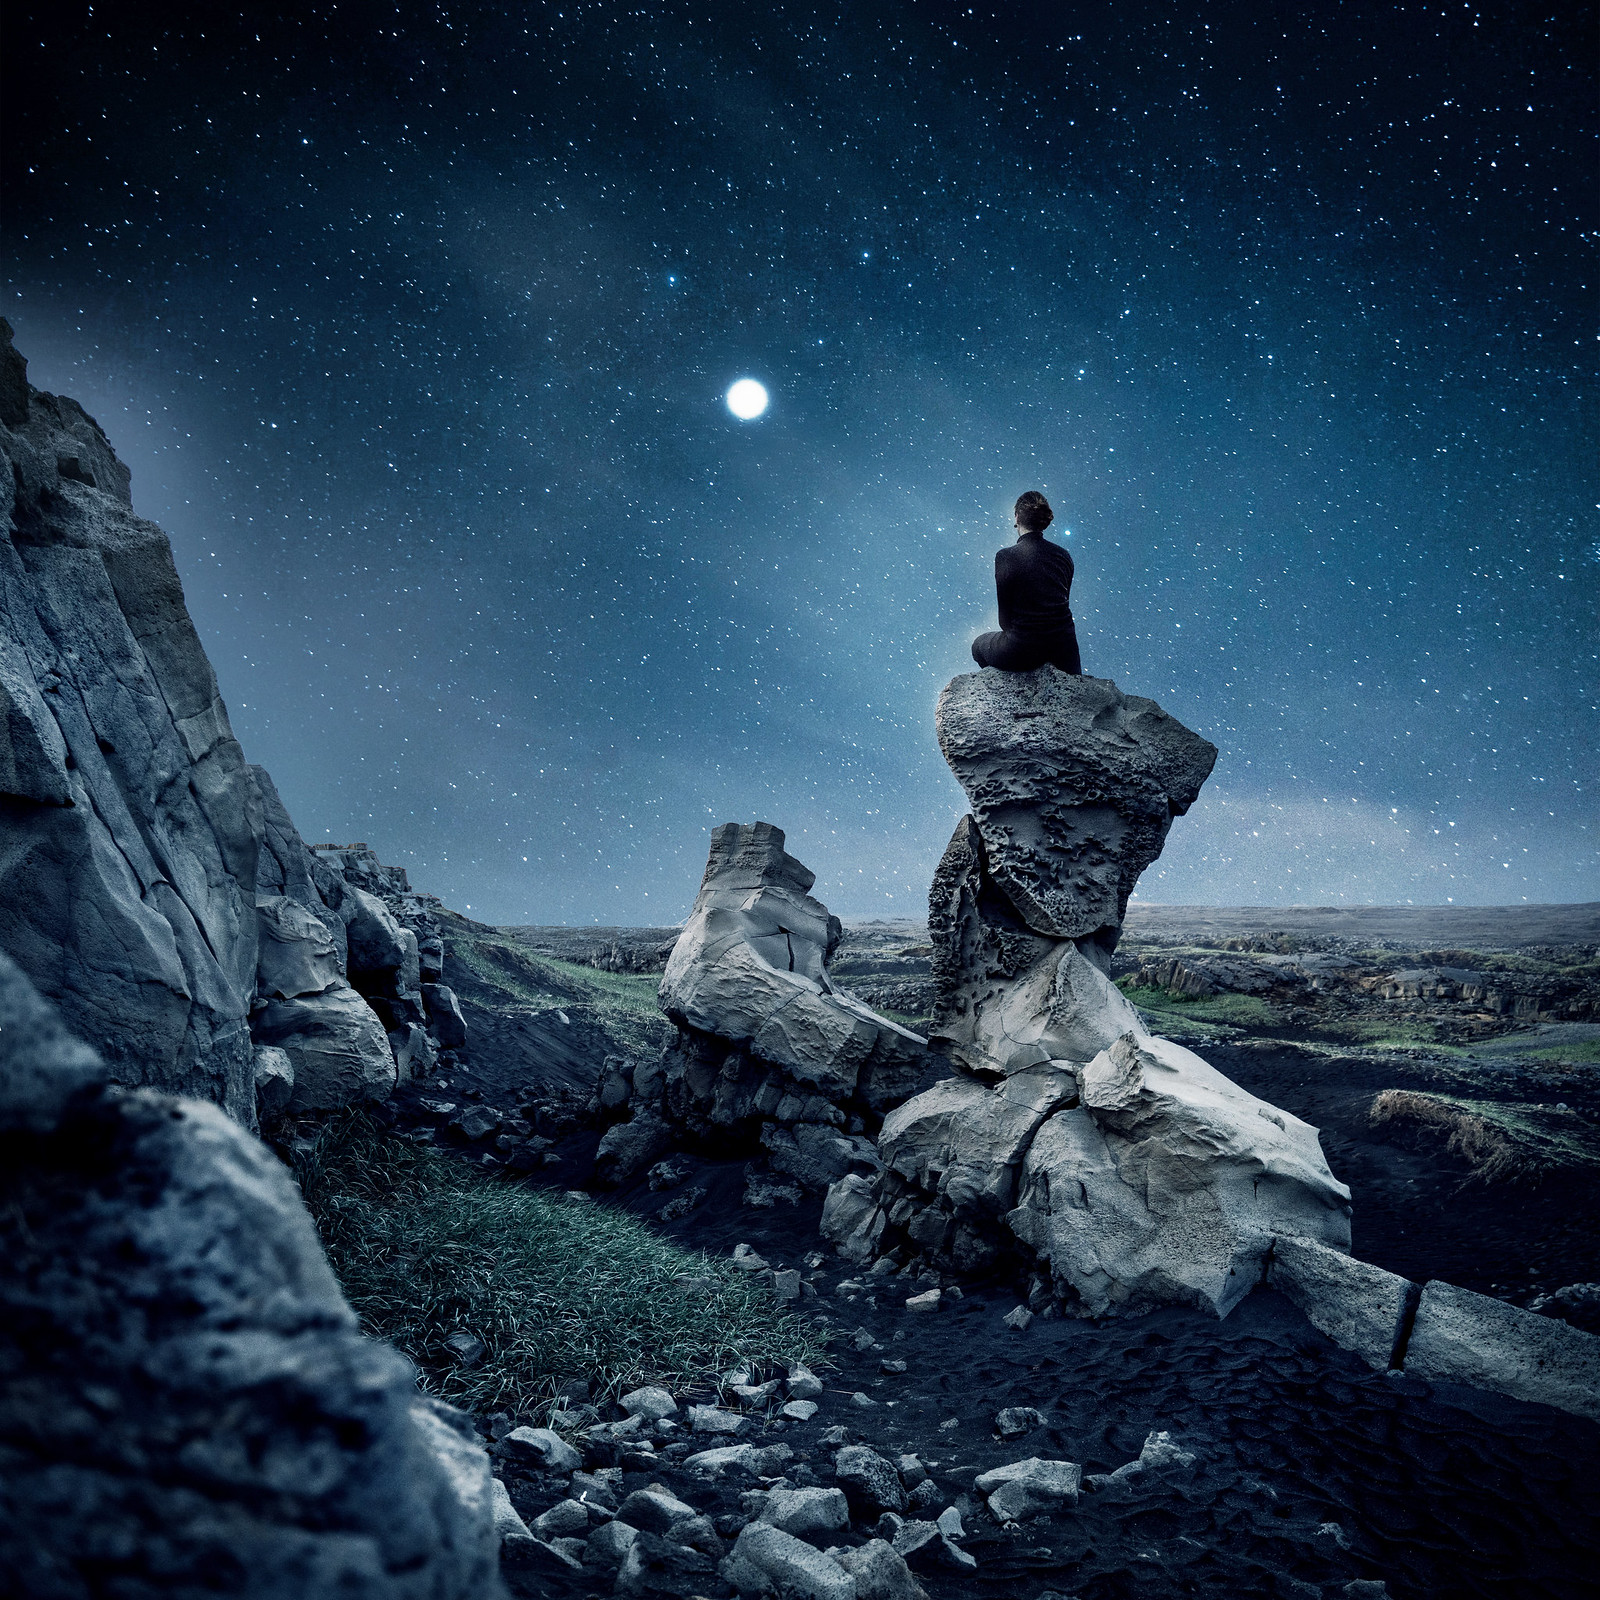 Self portrait photography under a night sky in Iceland.